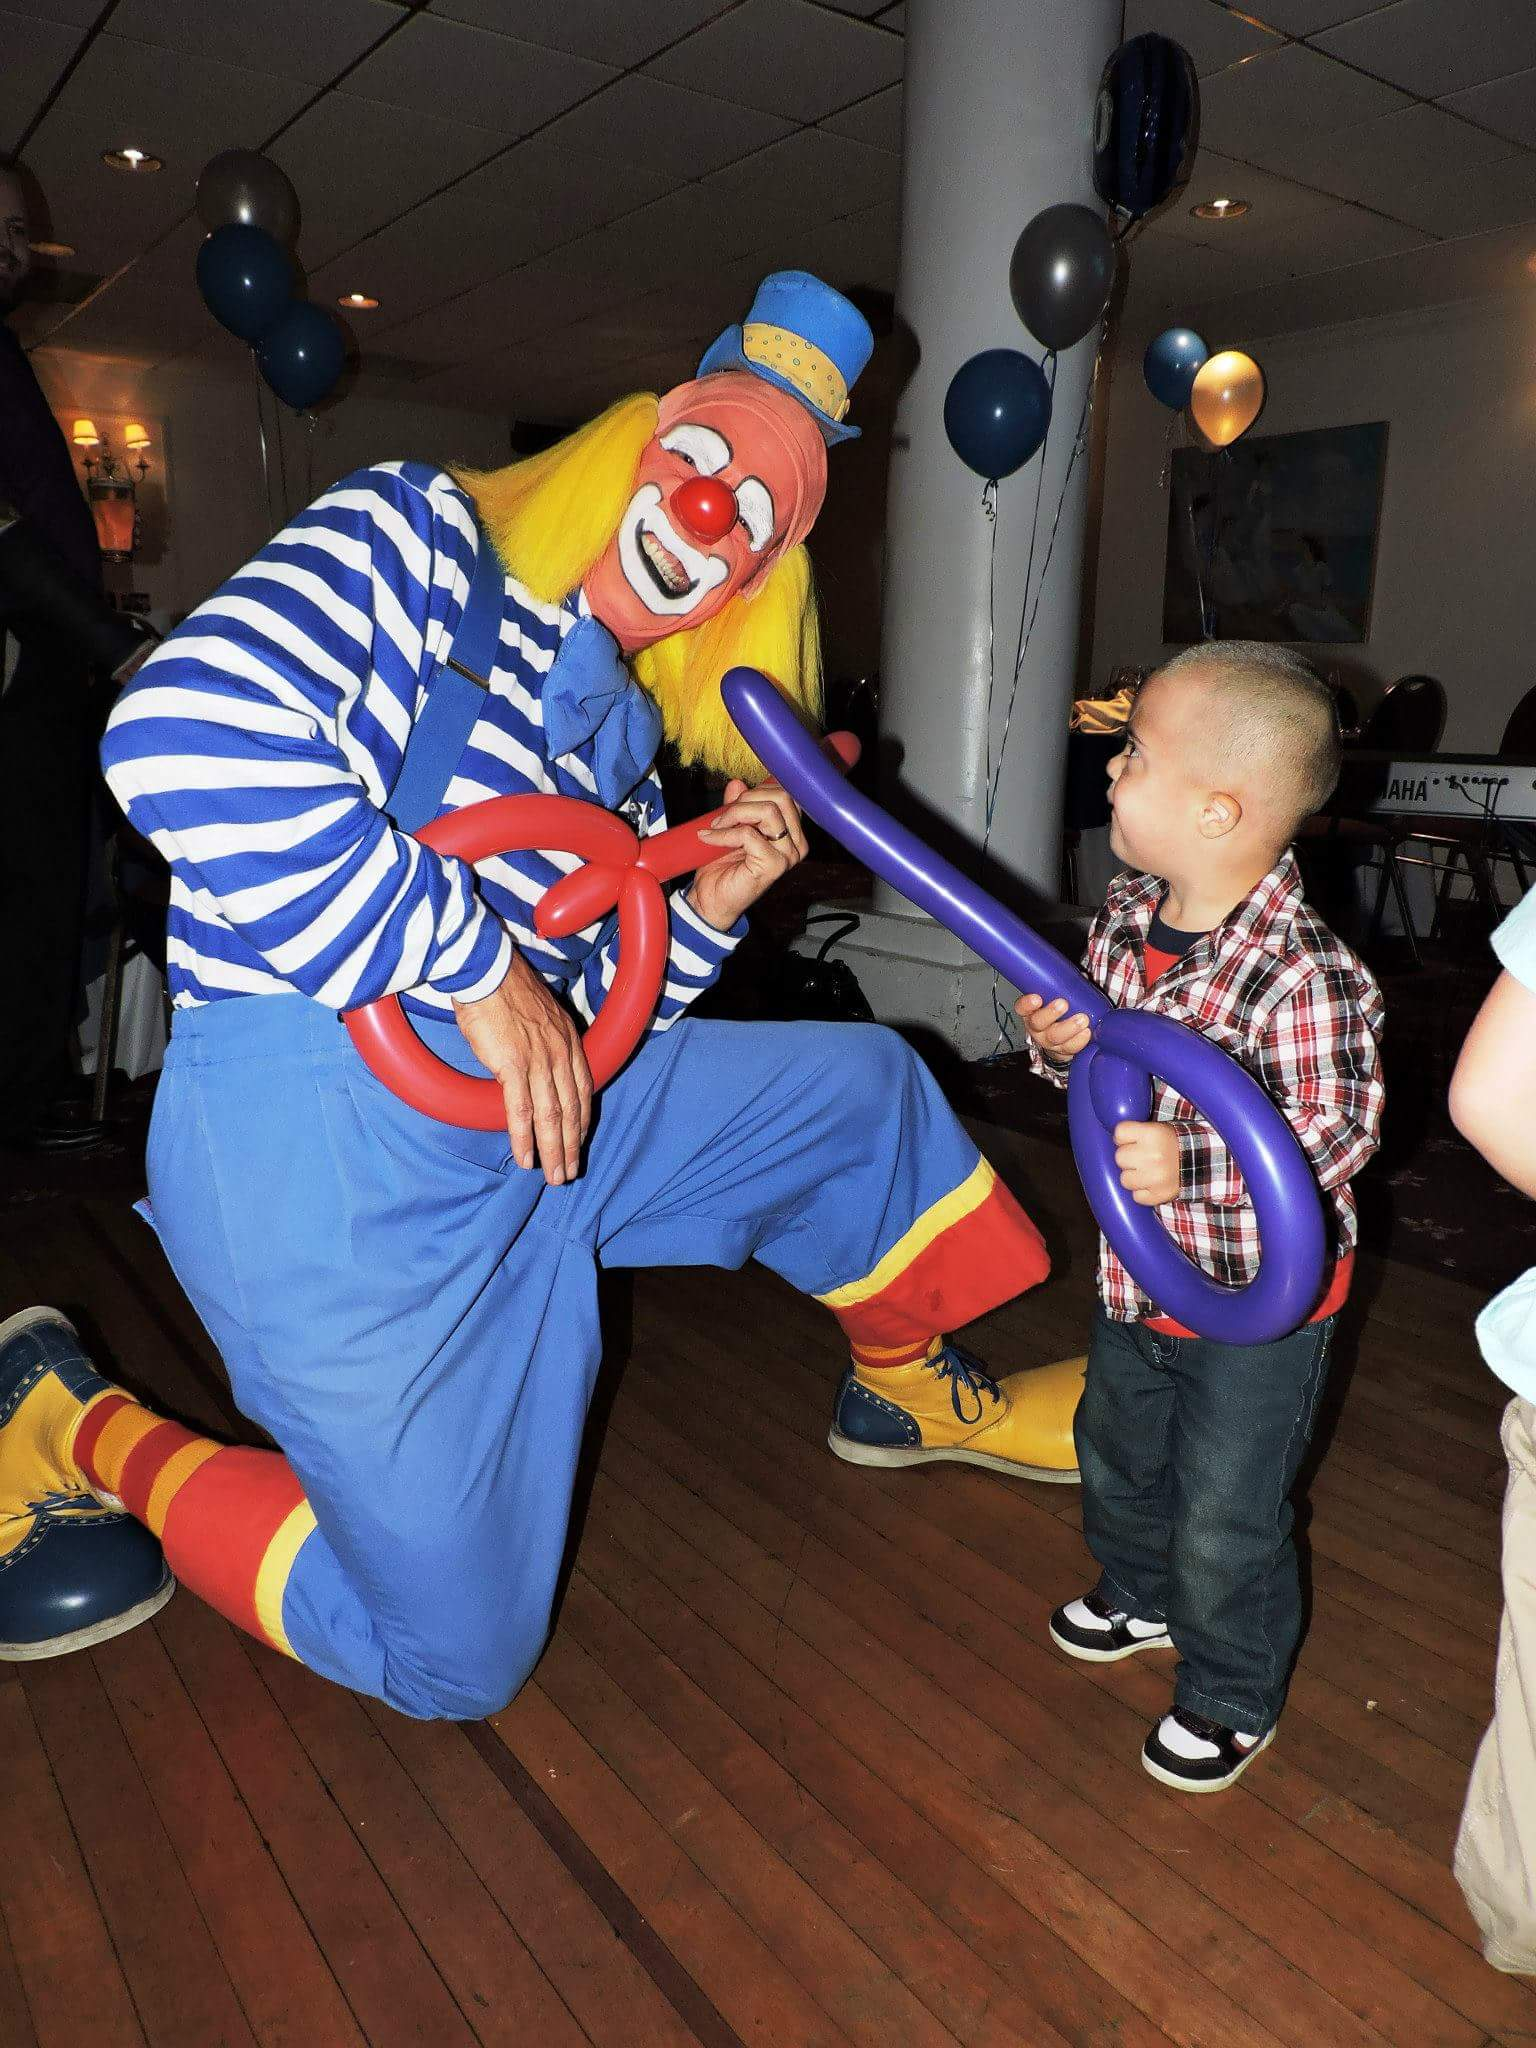 The Impact | Clown Takeover Blows Over Halloween